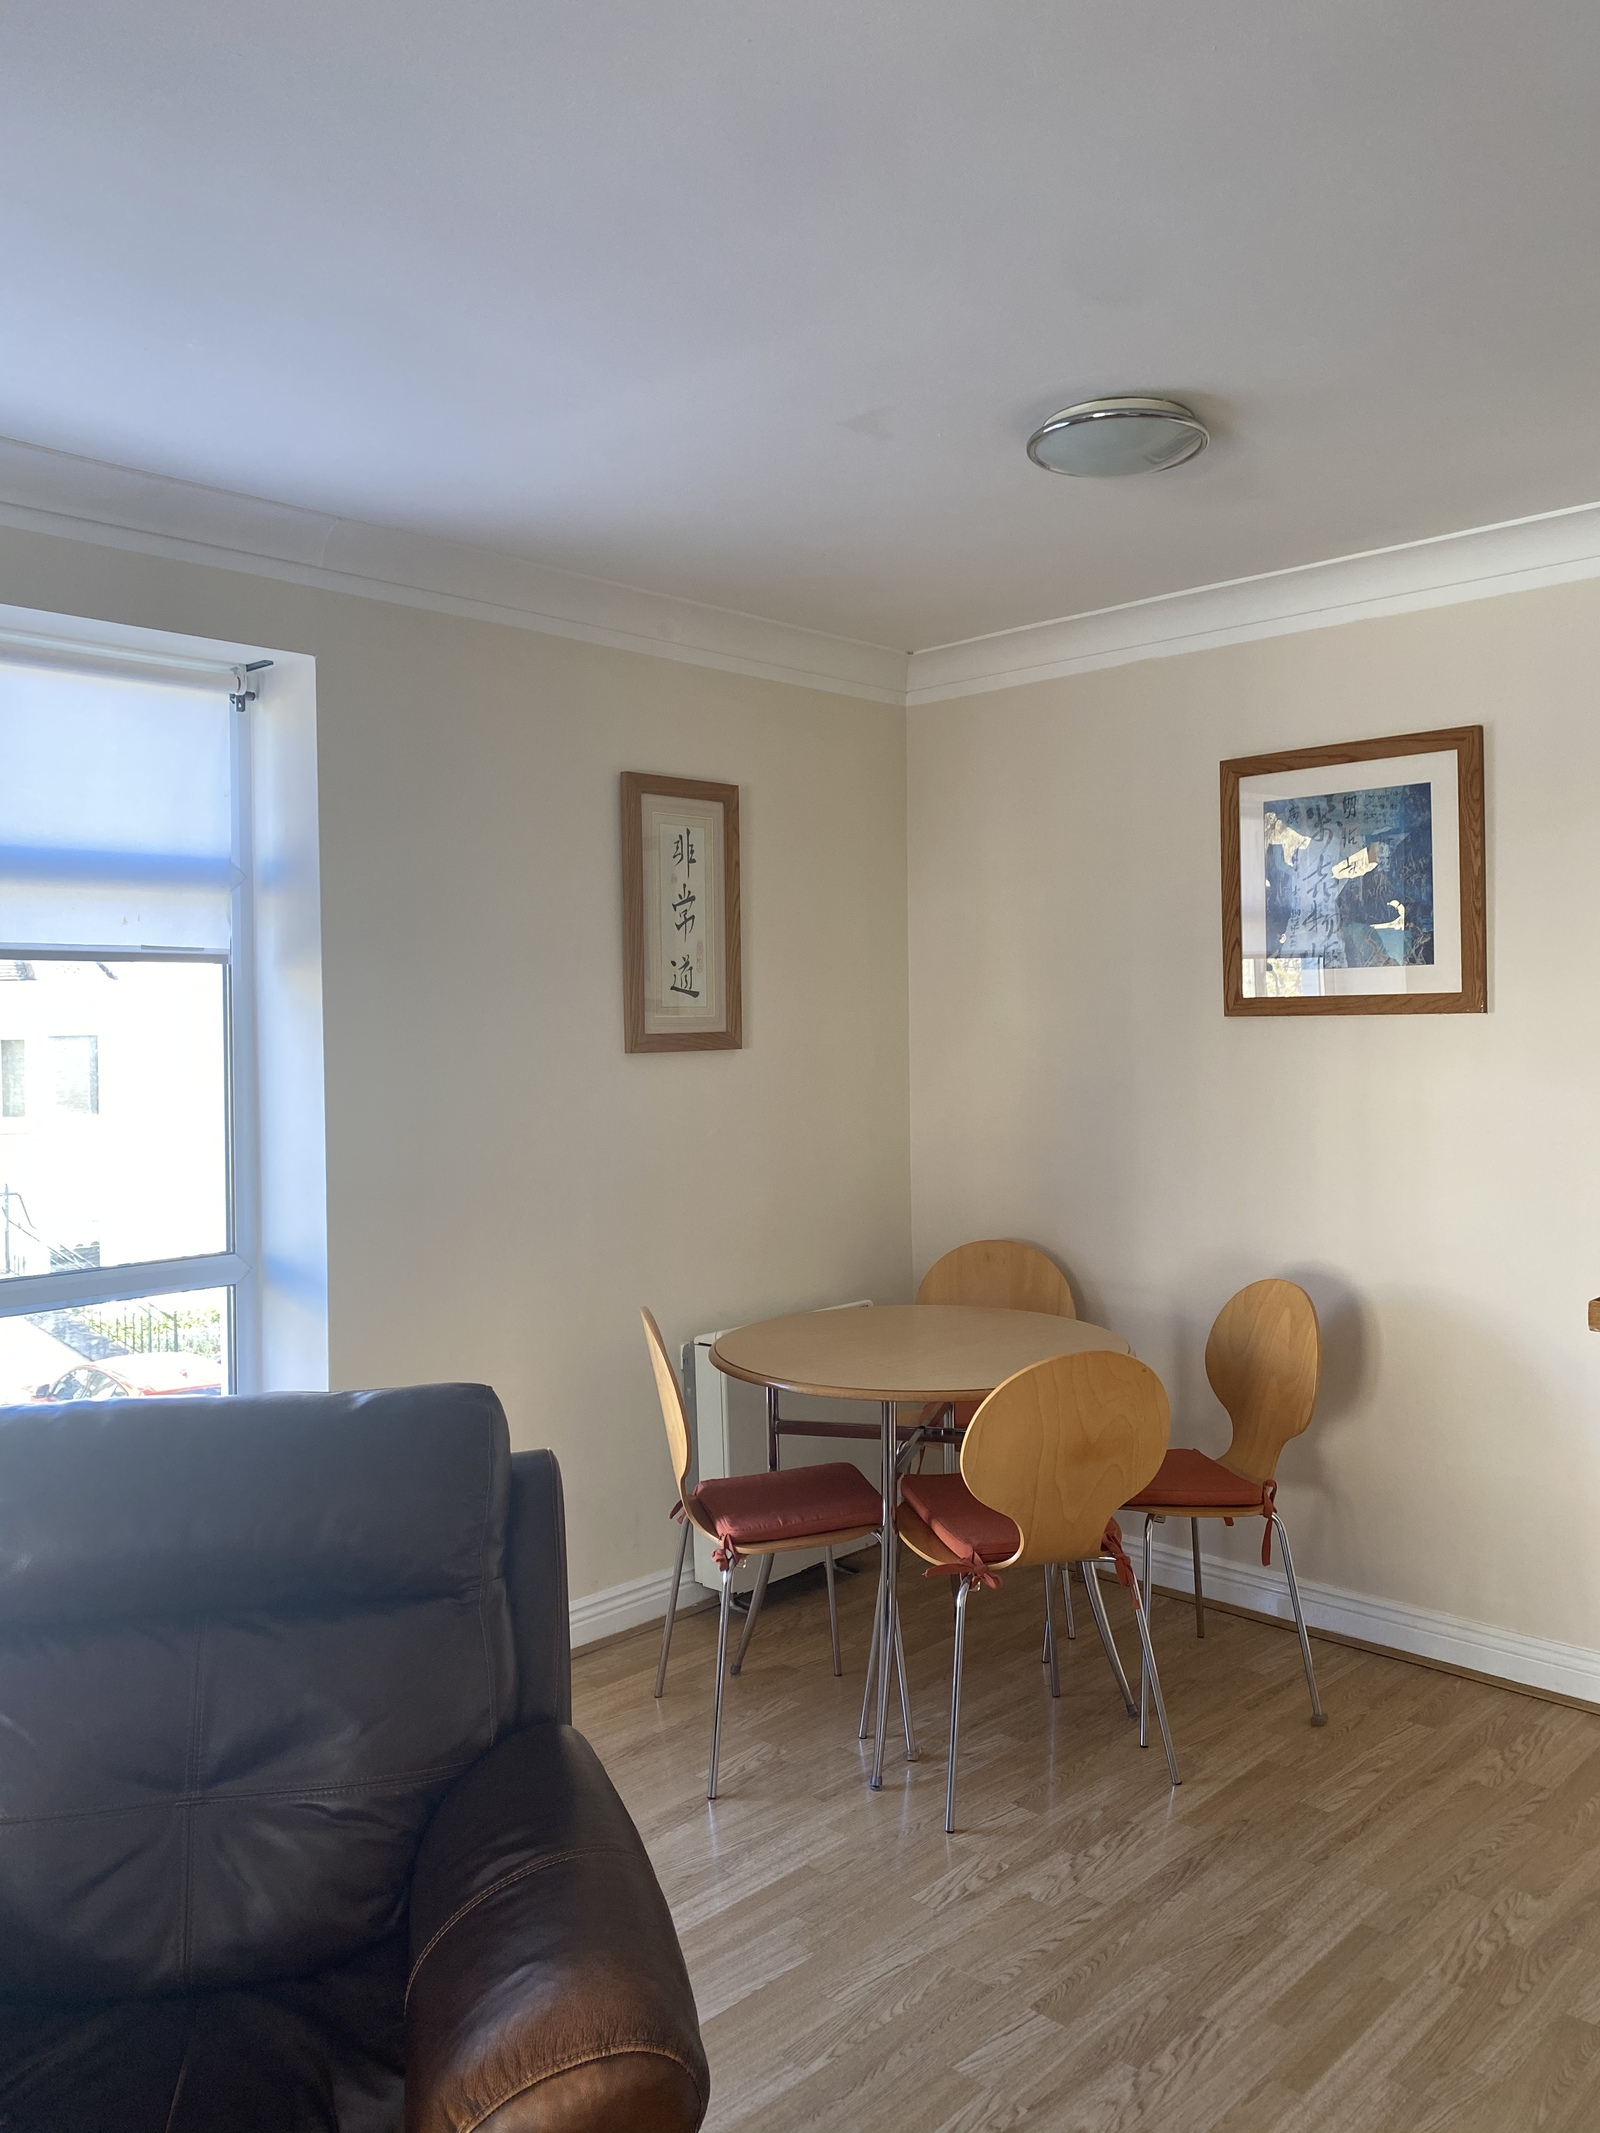 Apartment 5, Maple House, 43 Applewood Main Street, Swords, Co. Dublin